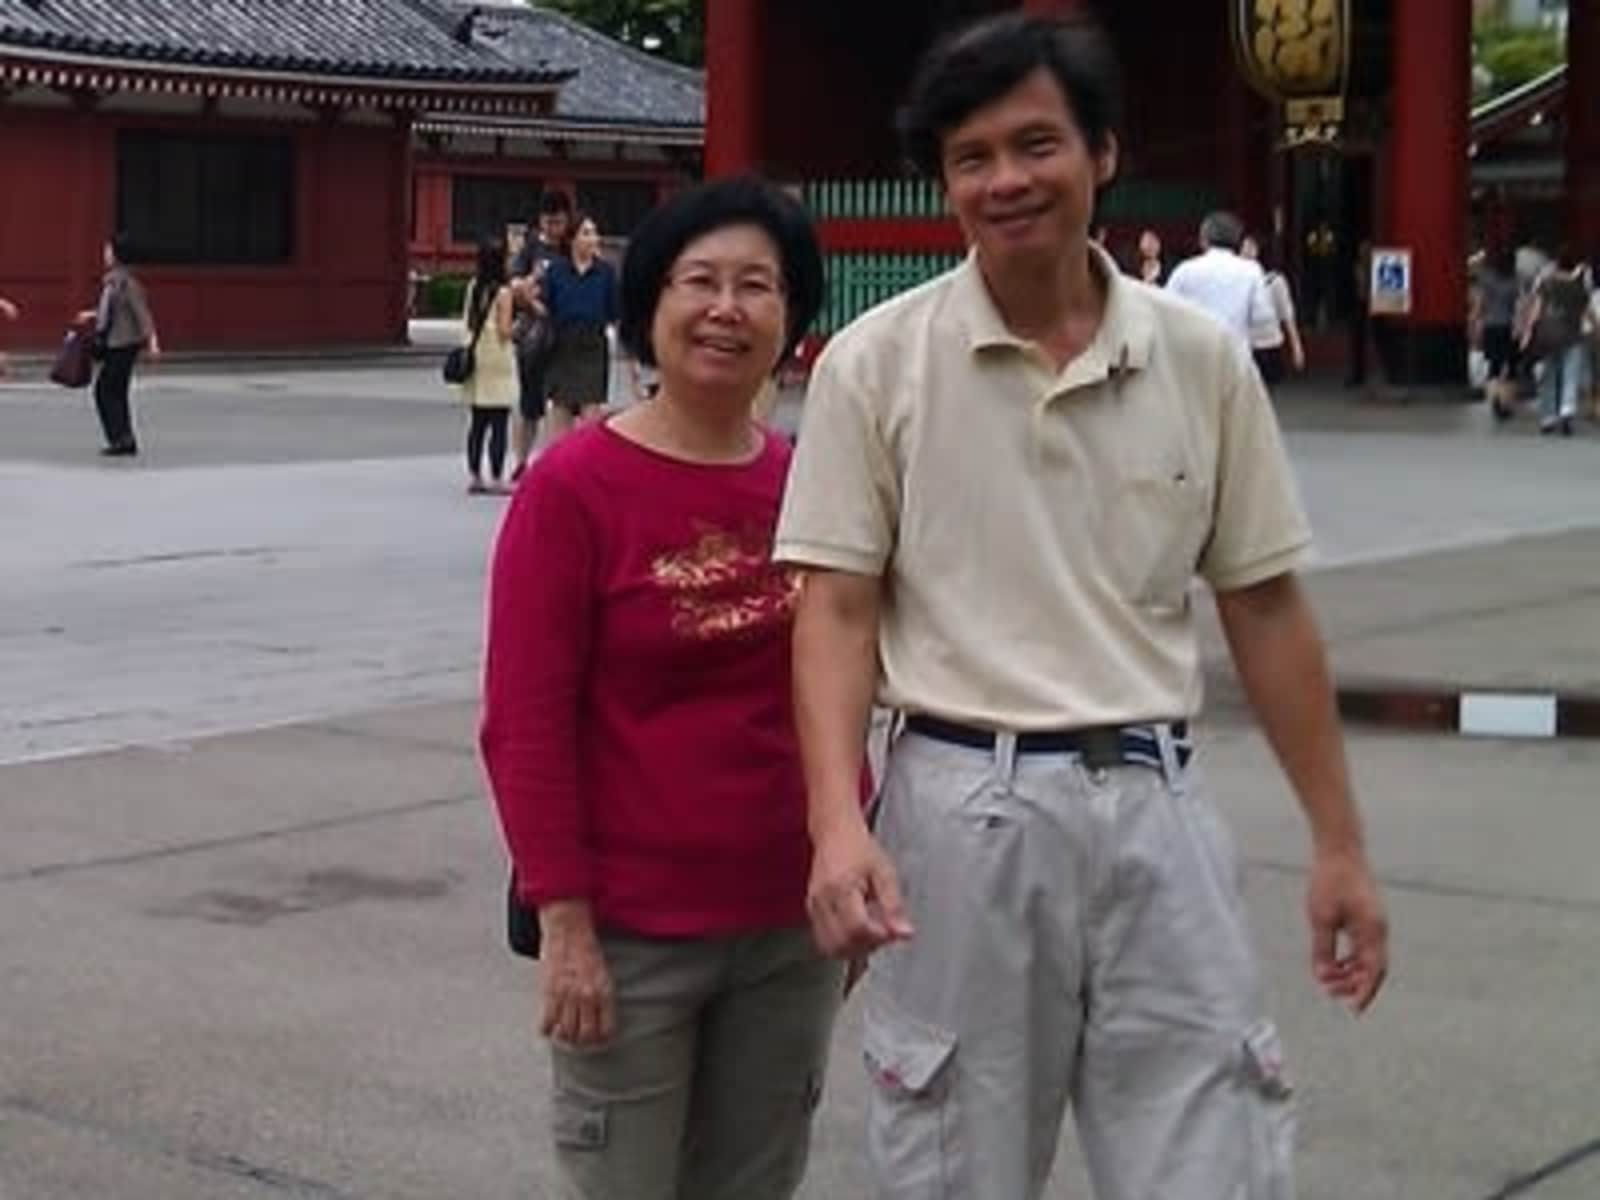 James & Joanna from George Town, Malaysia